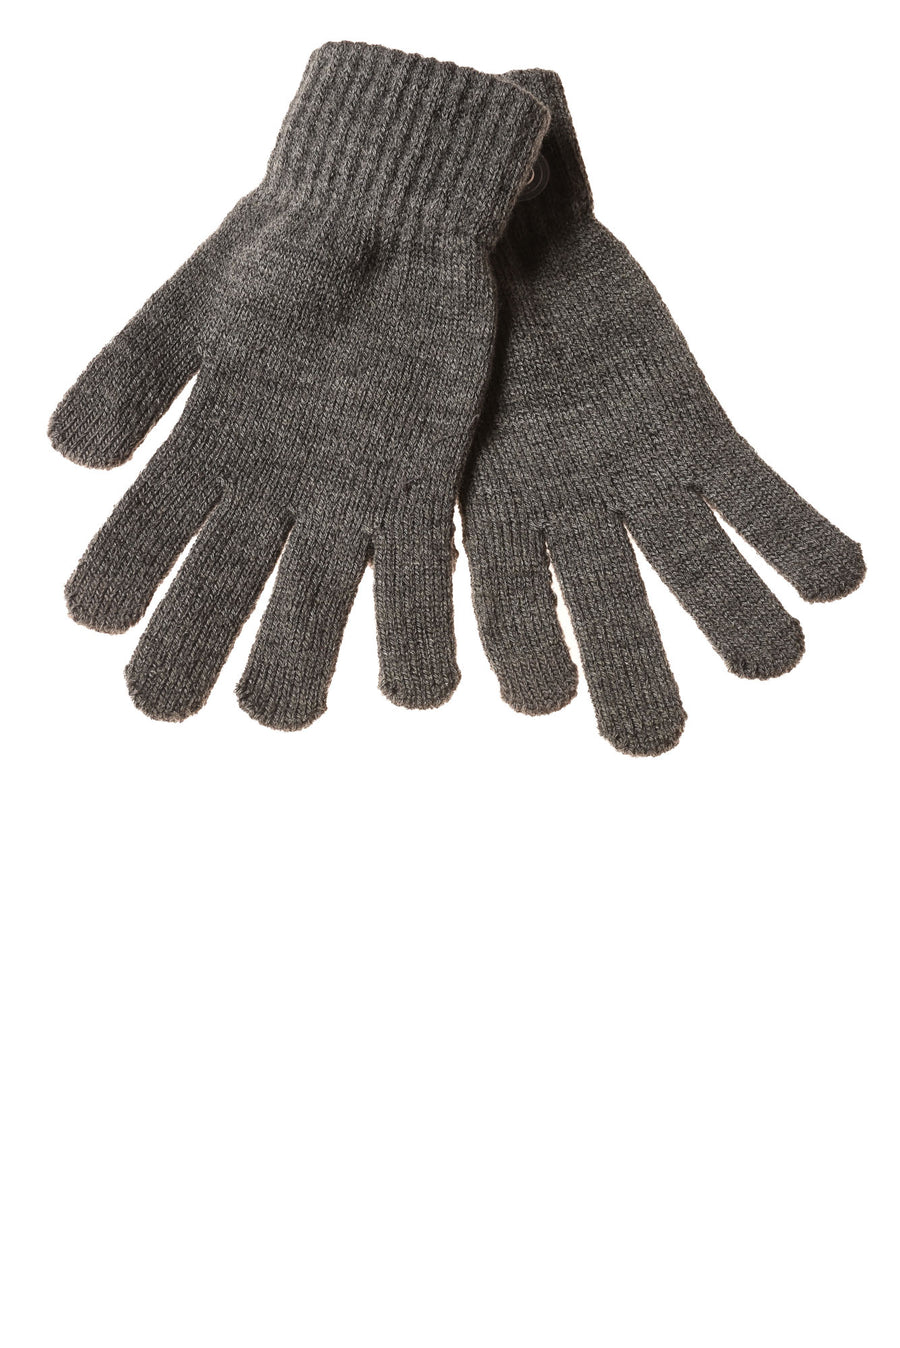 NEW No Brand Women's Gloves One Size Gray